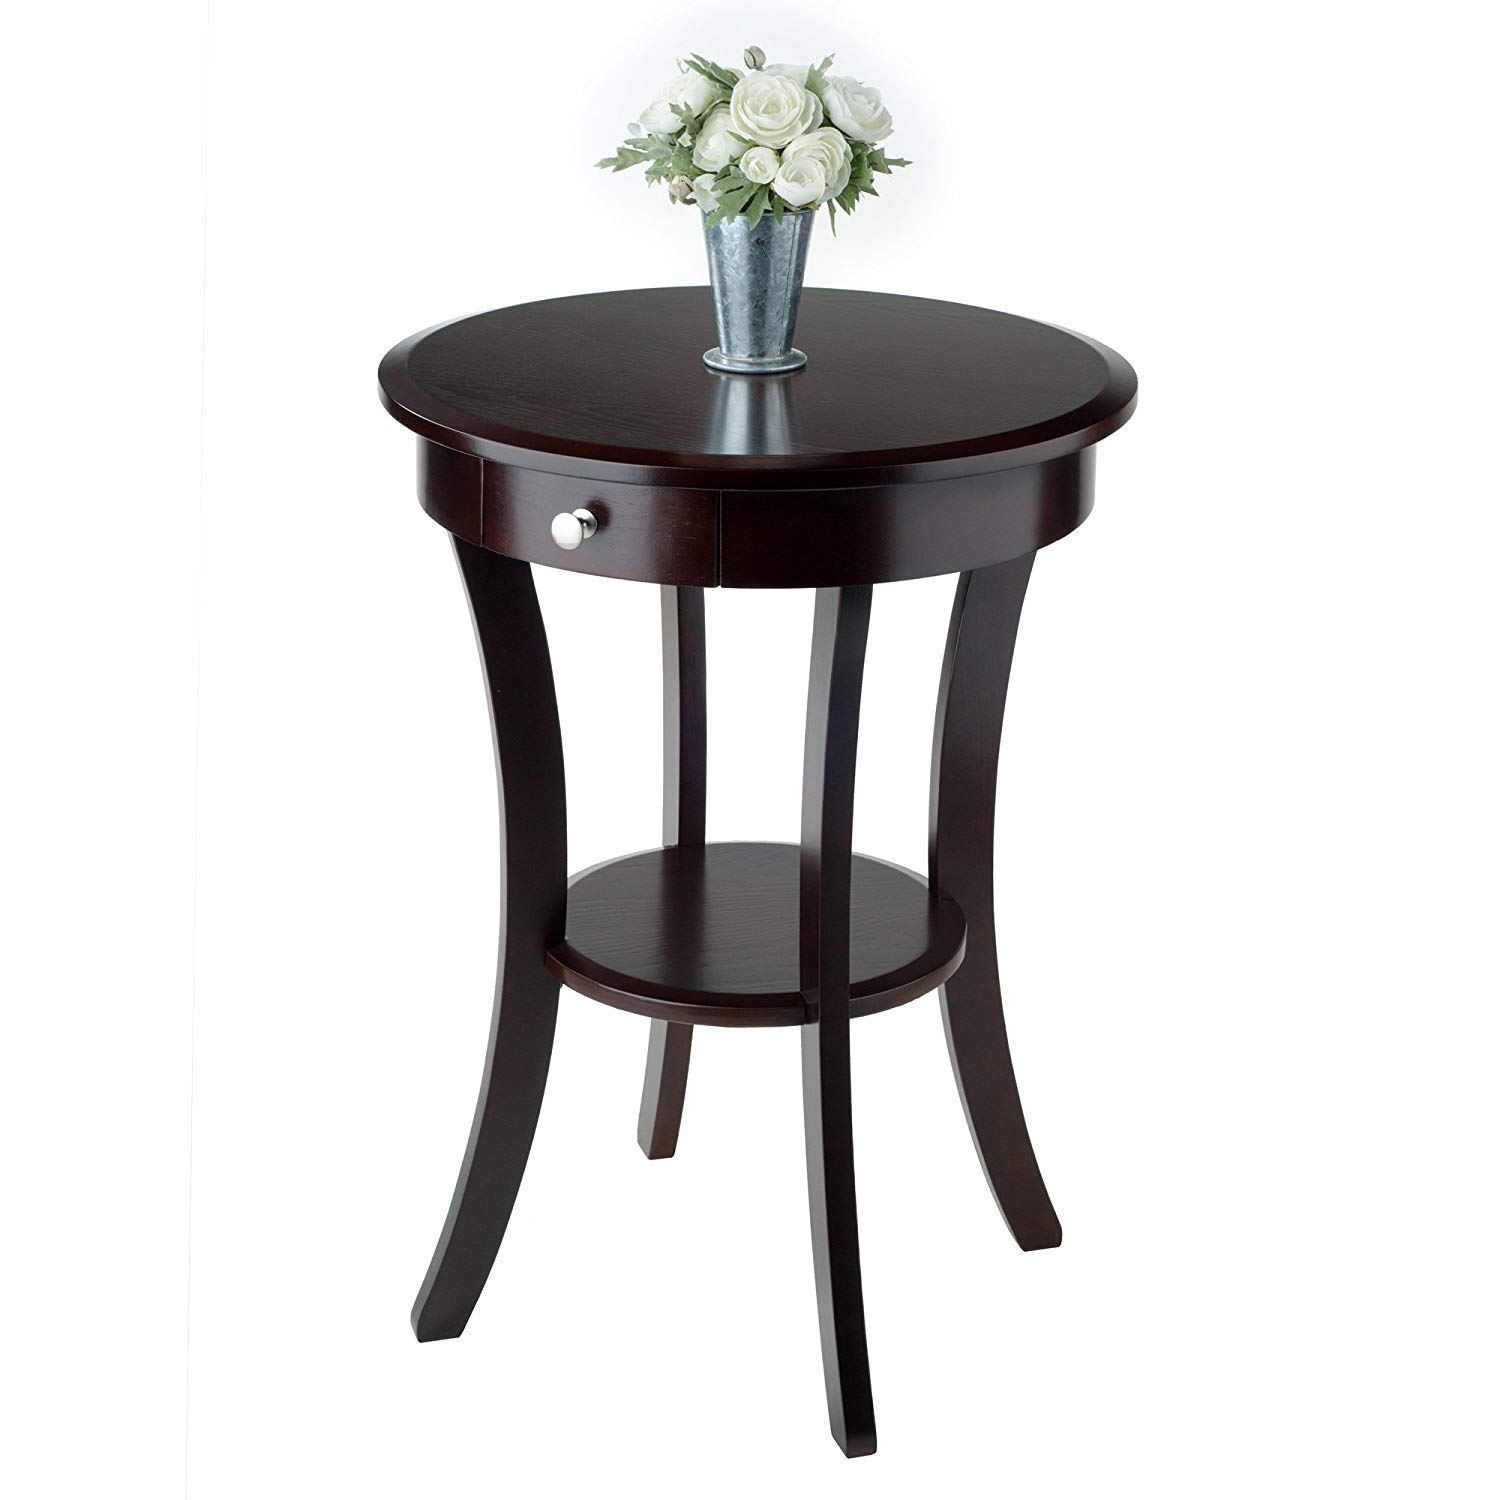 round end table with drawer find small oval accent get quotations for places cappuccino premium wood night stand modern white coffee dark console mirage mirrored cabinet narrow